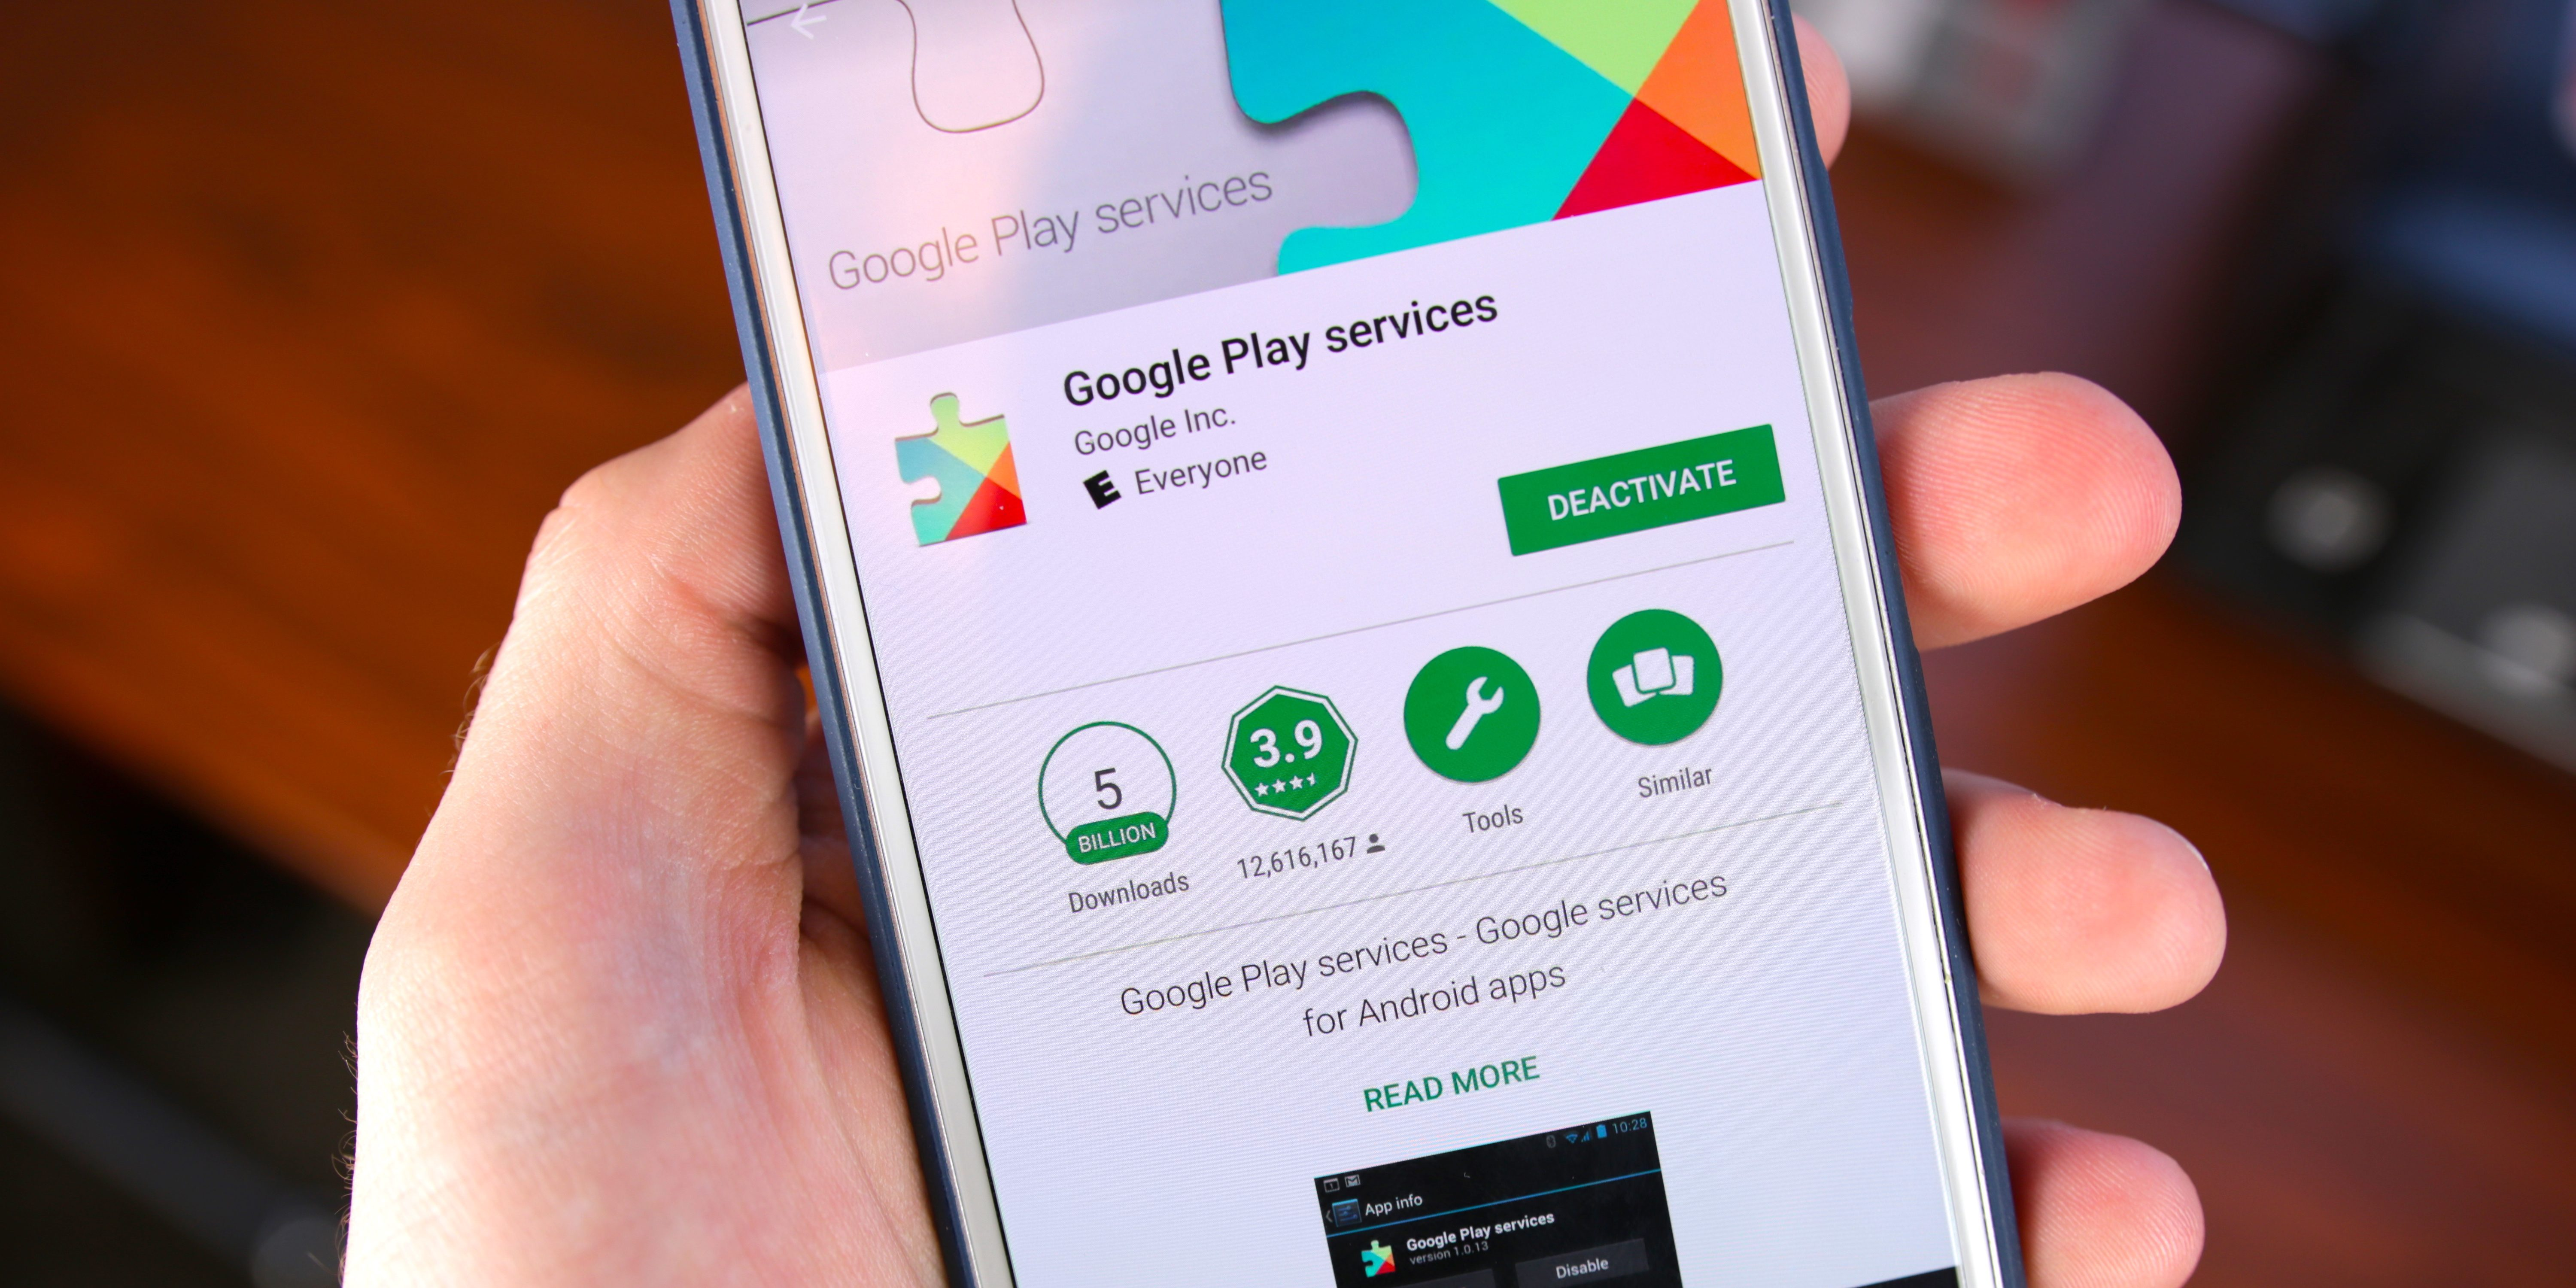 Momo Youtube Update: How To Update Google Play Services On Android